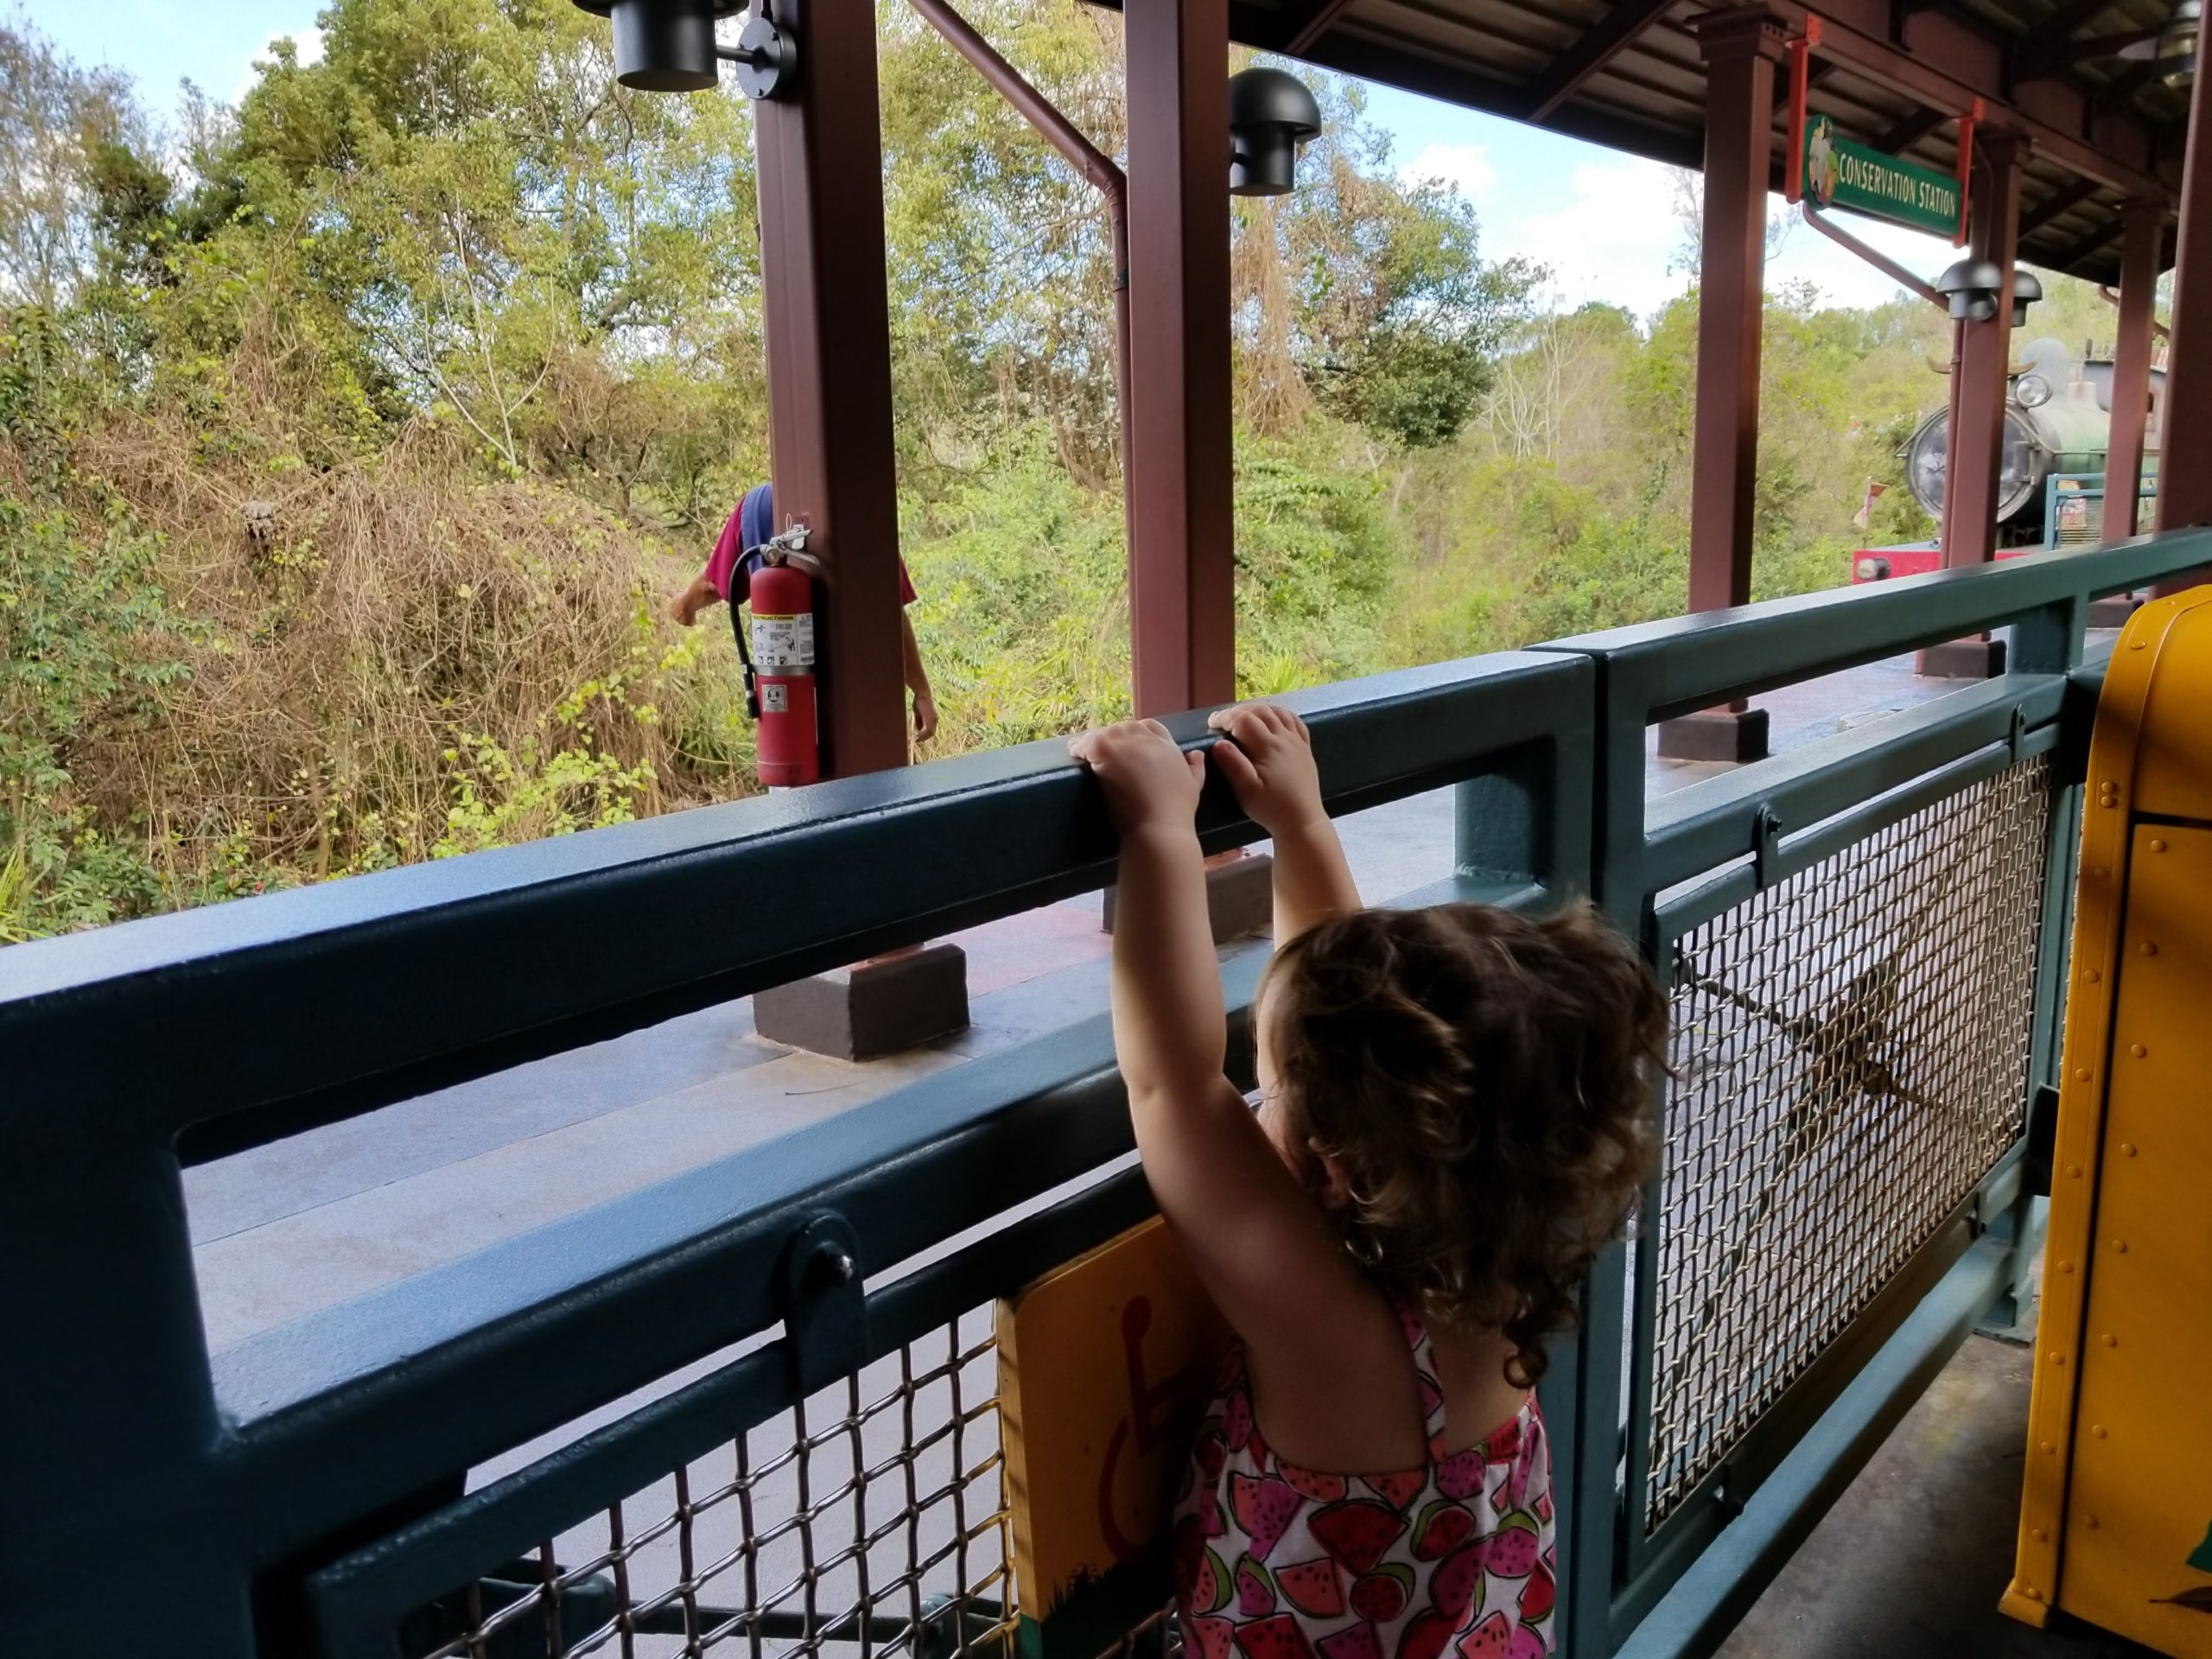 Waiting for the Wildlife Express Train, a 1.2 miles trek taking guests from Harambe Station in the Africa section to Conservation Station in the Rafiki's Planet Watch section.